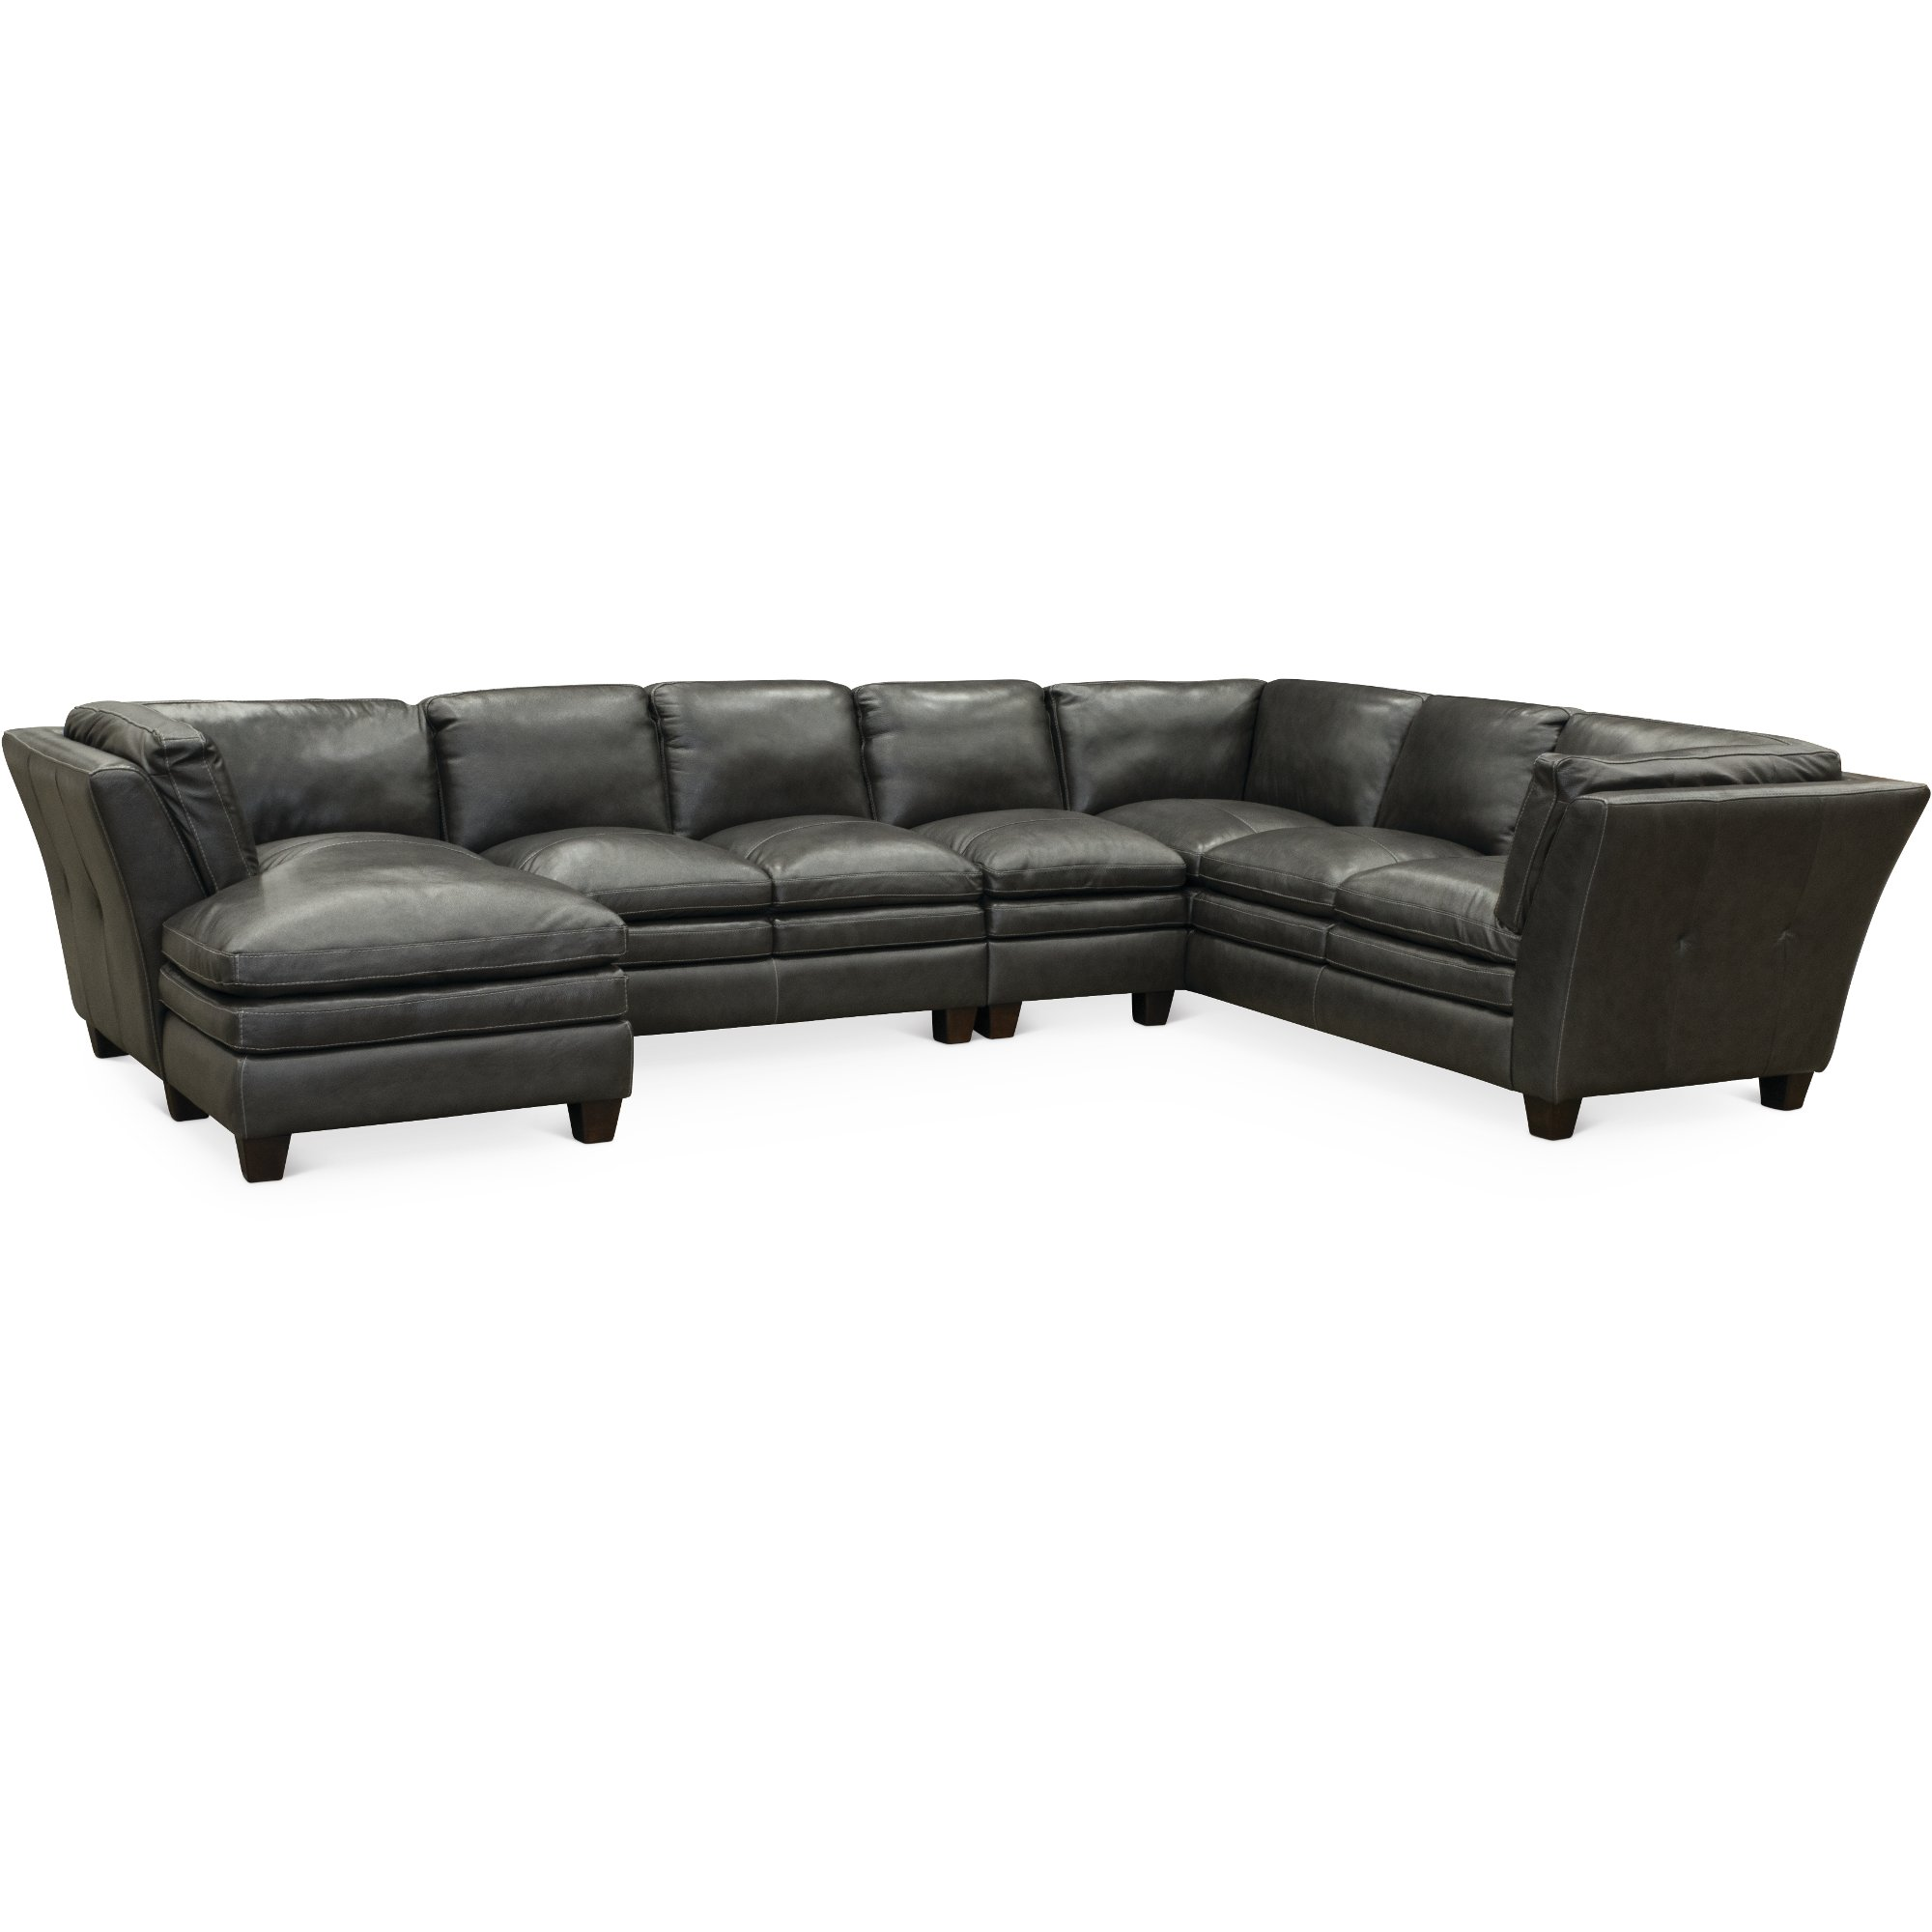 Charmant Contemporary Slate Gray Leather 4 Piece Sectional Sofa   Capri